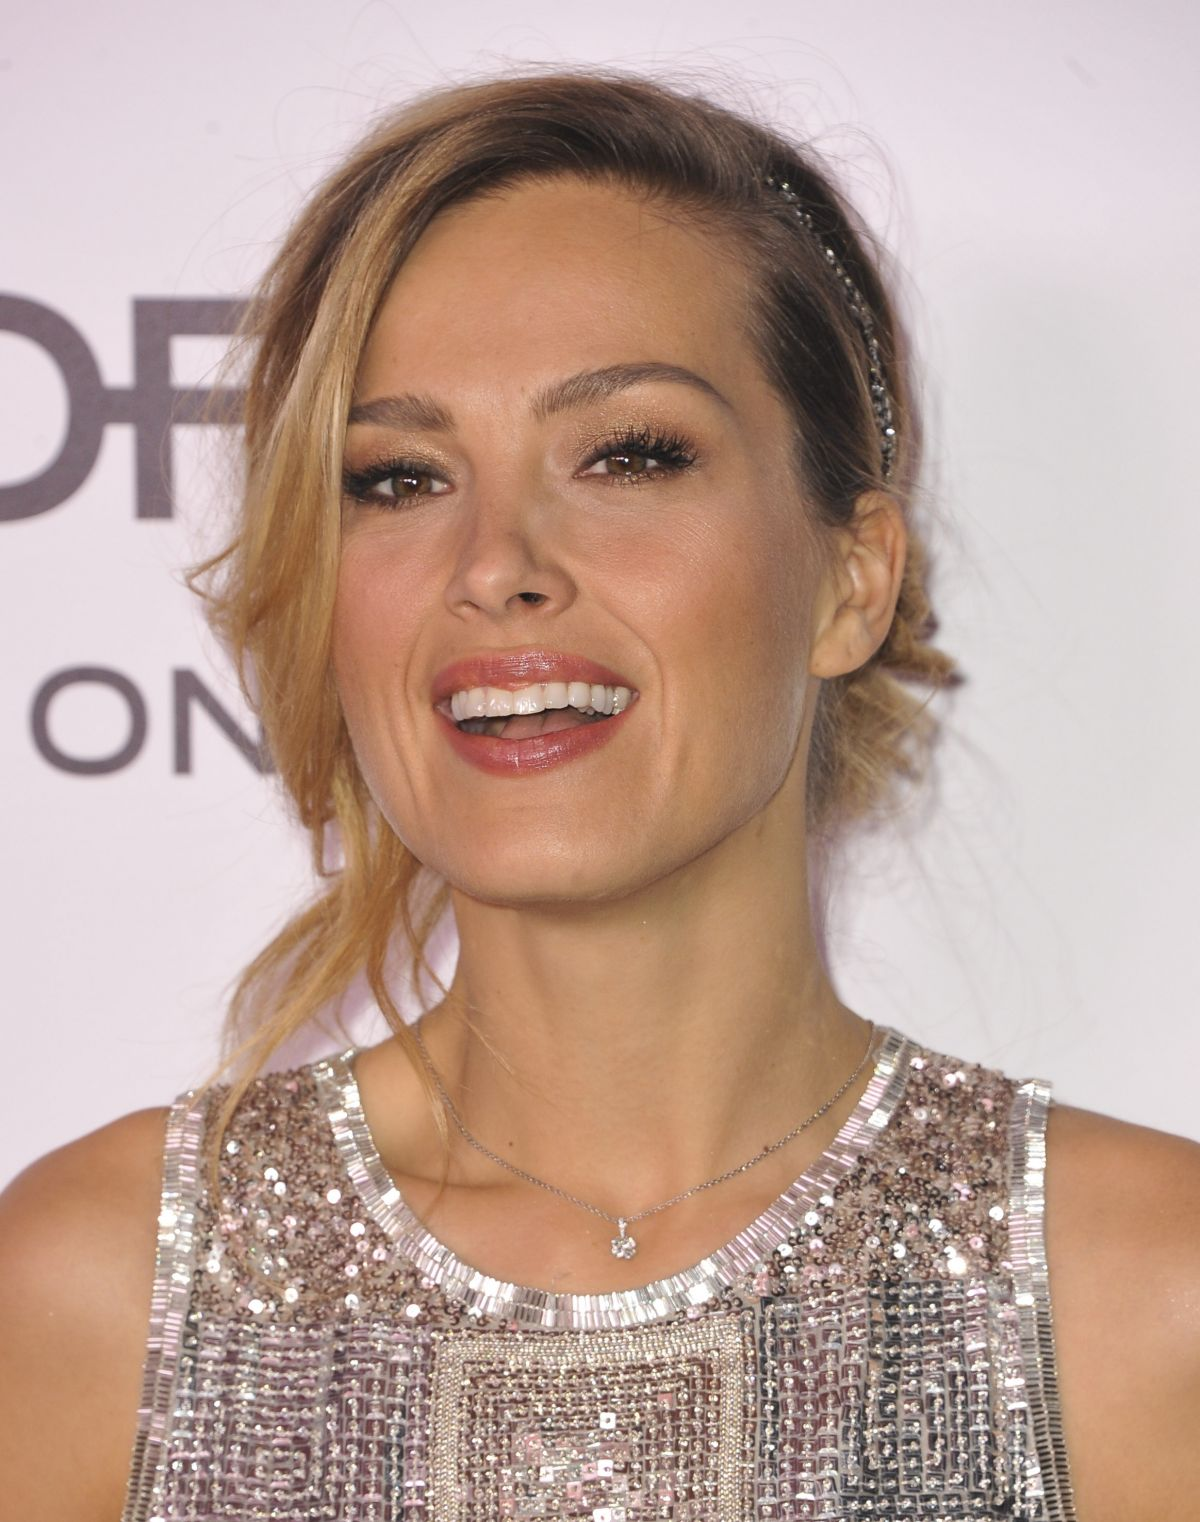 PETRA NEMCOVA at Harper's Bazaar 150 Most Fashionable Women Party in Hollywood 01/27/2017